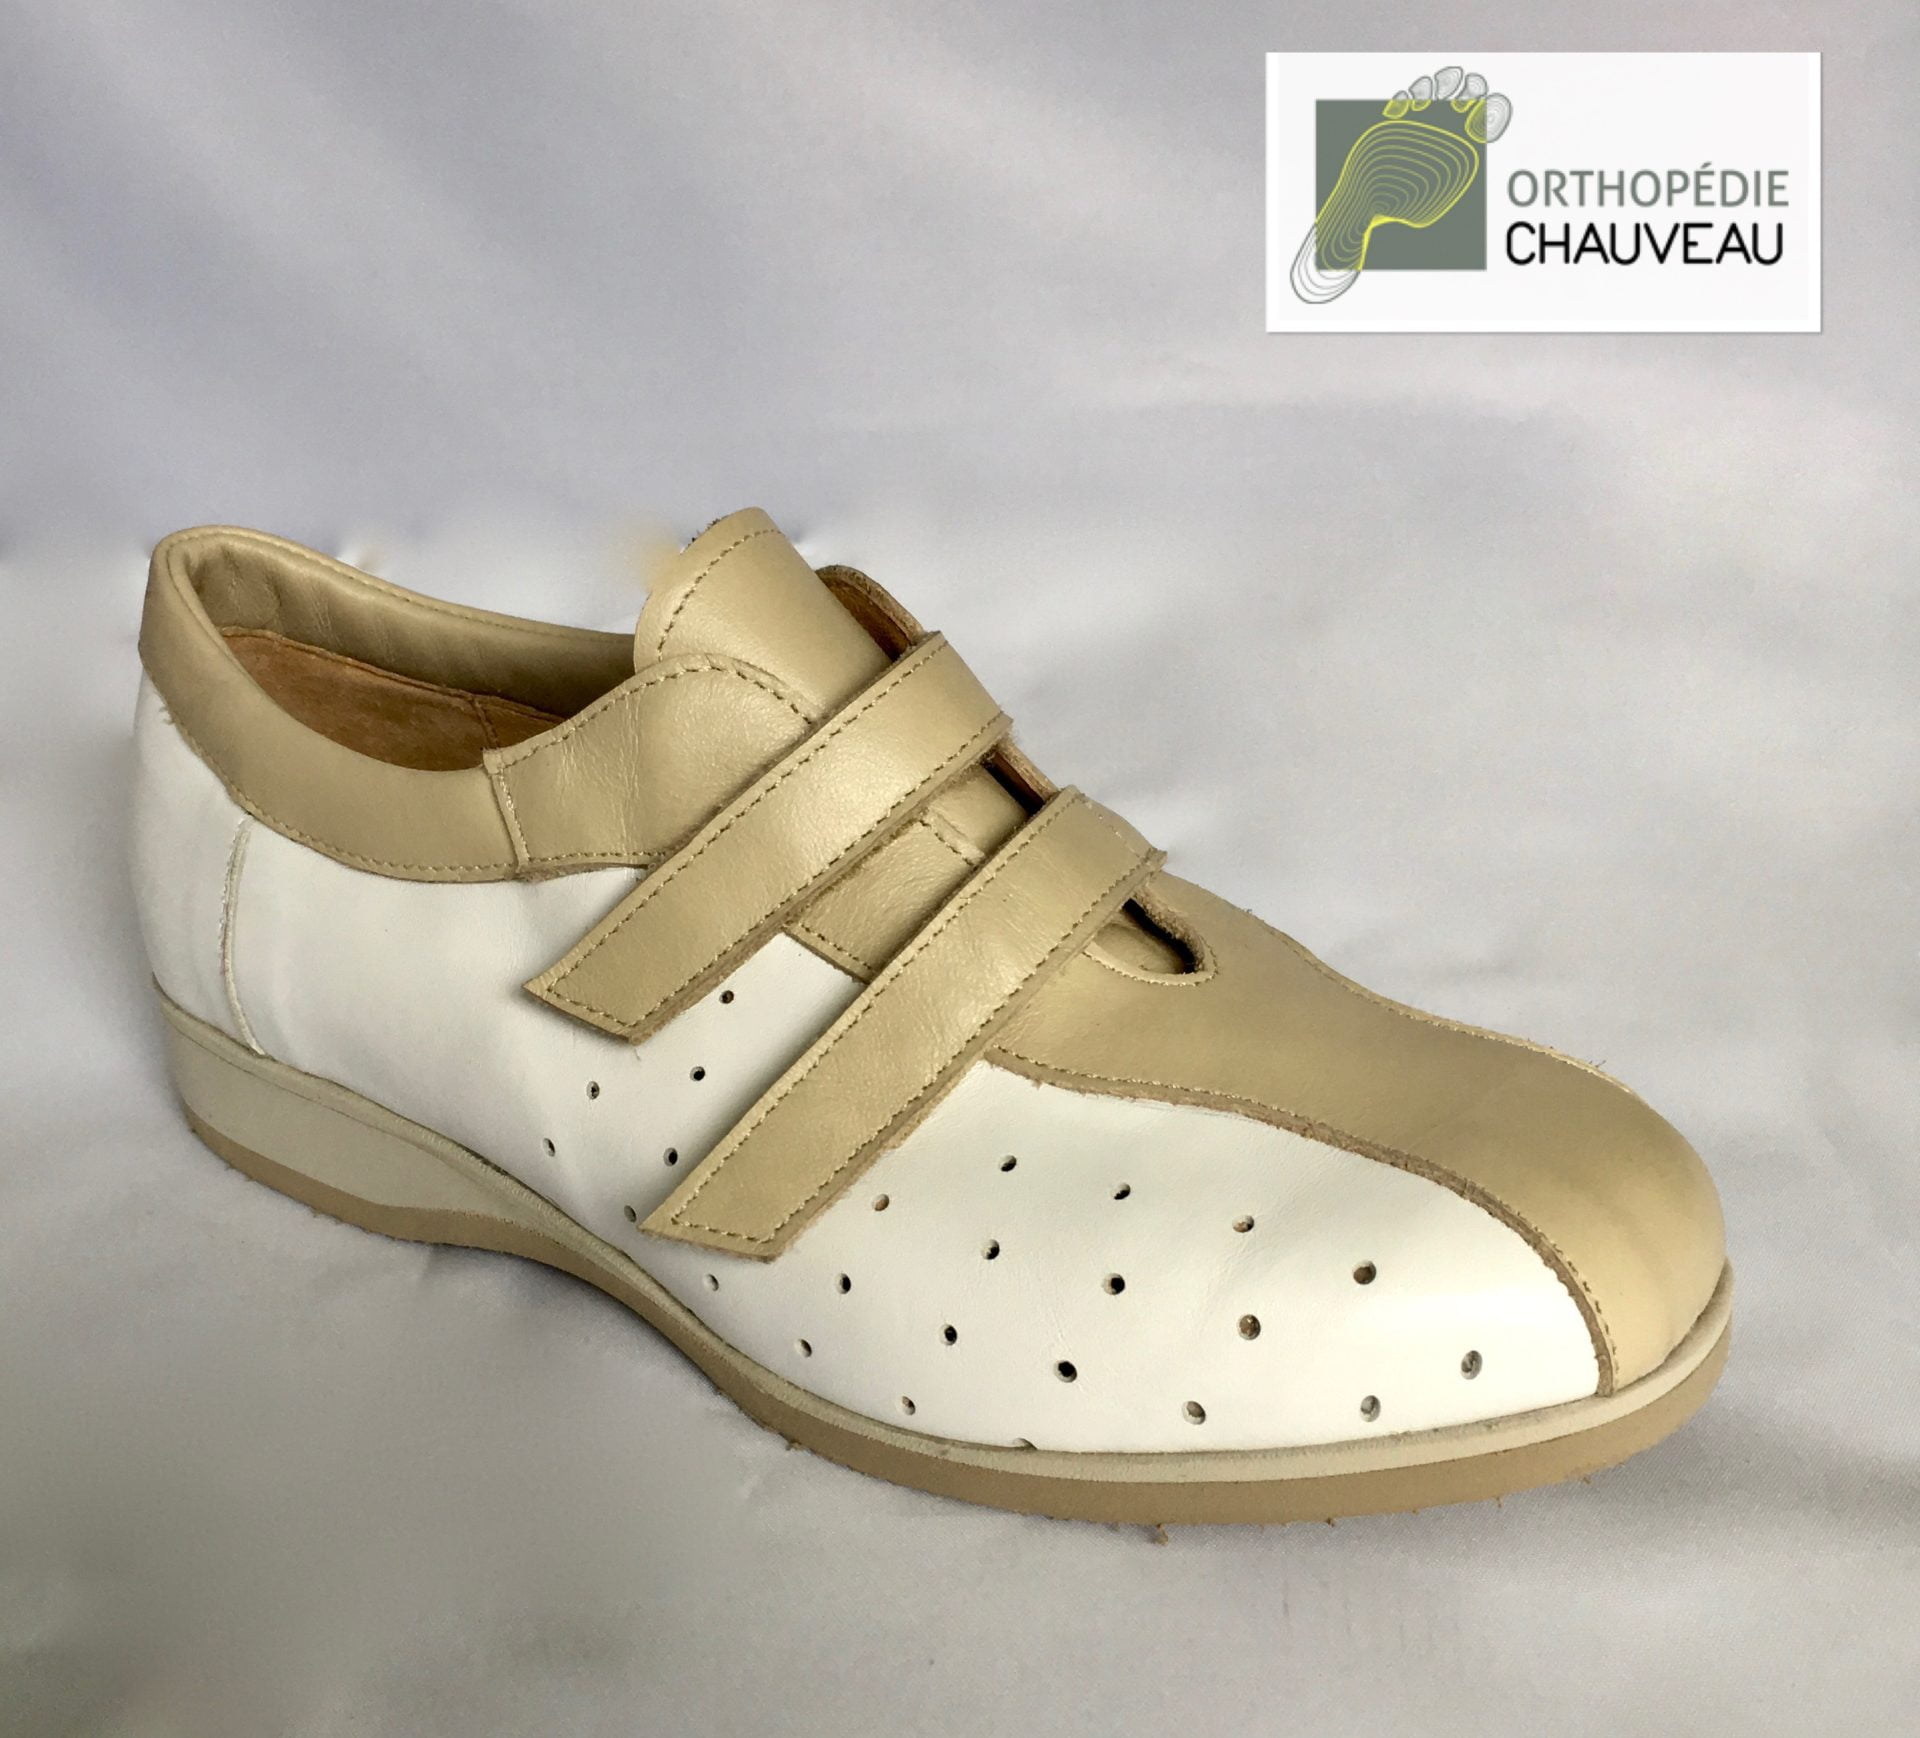 chaussures orthopediques Rennes blanche